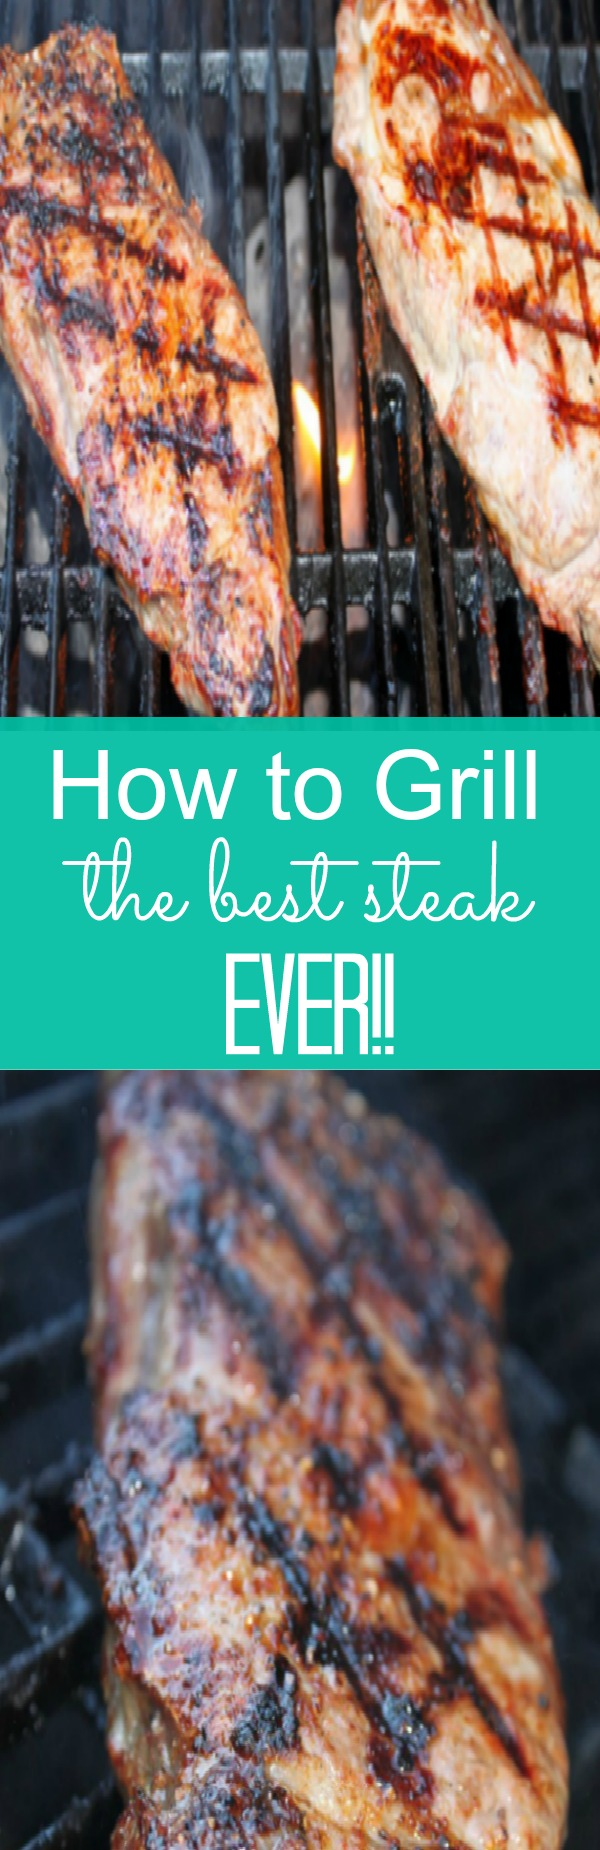 how to cook the best steak ever on the grill